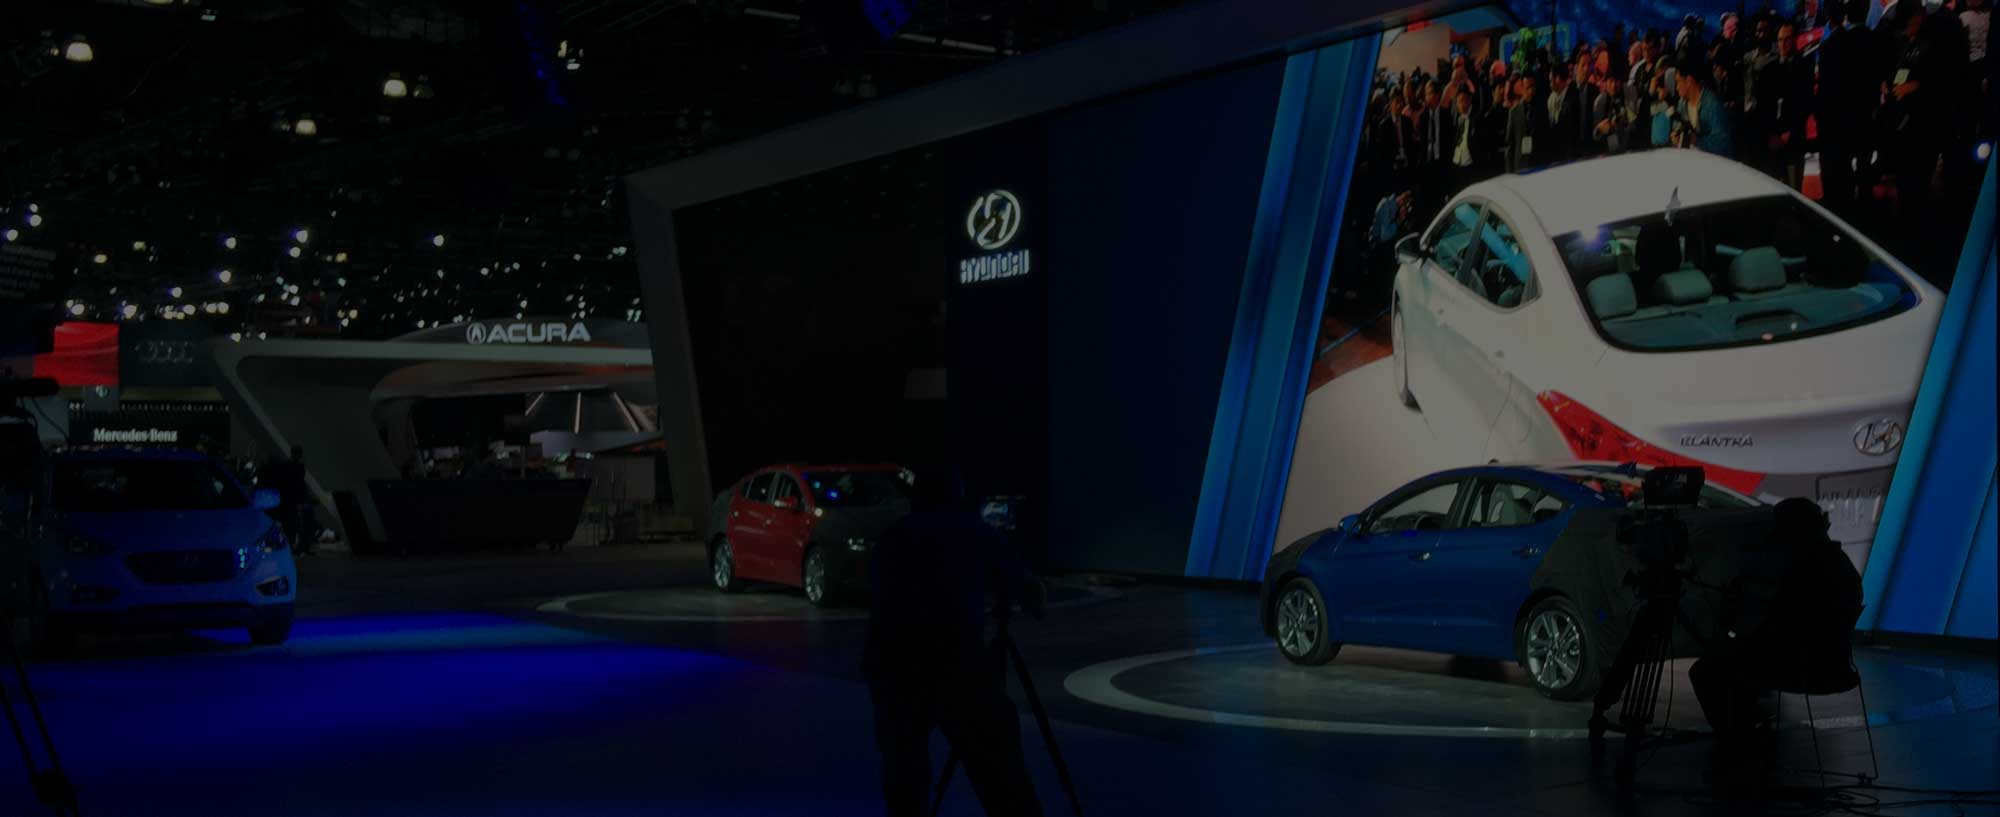 Auto Show Season Begins, and Matrix Visual is Ready